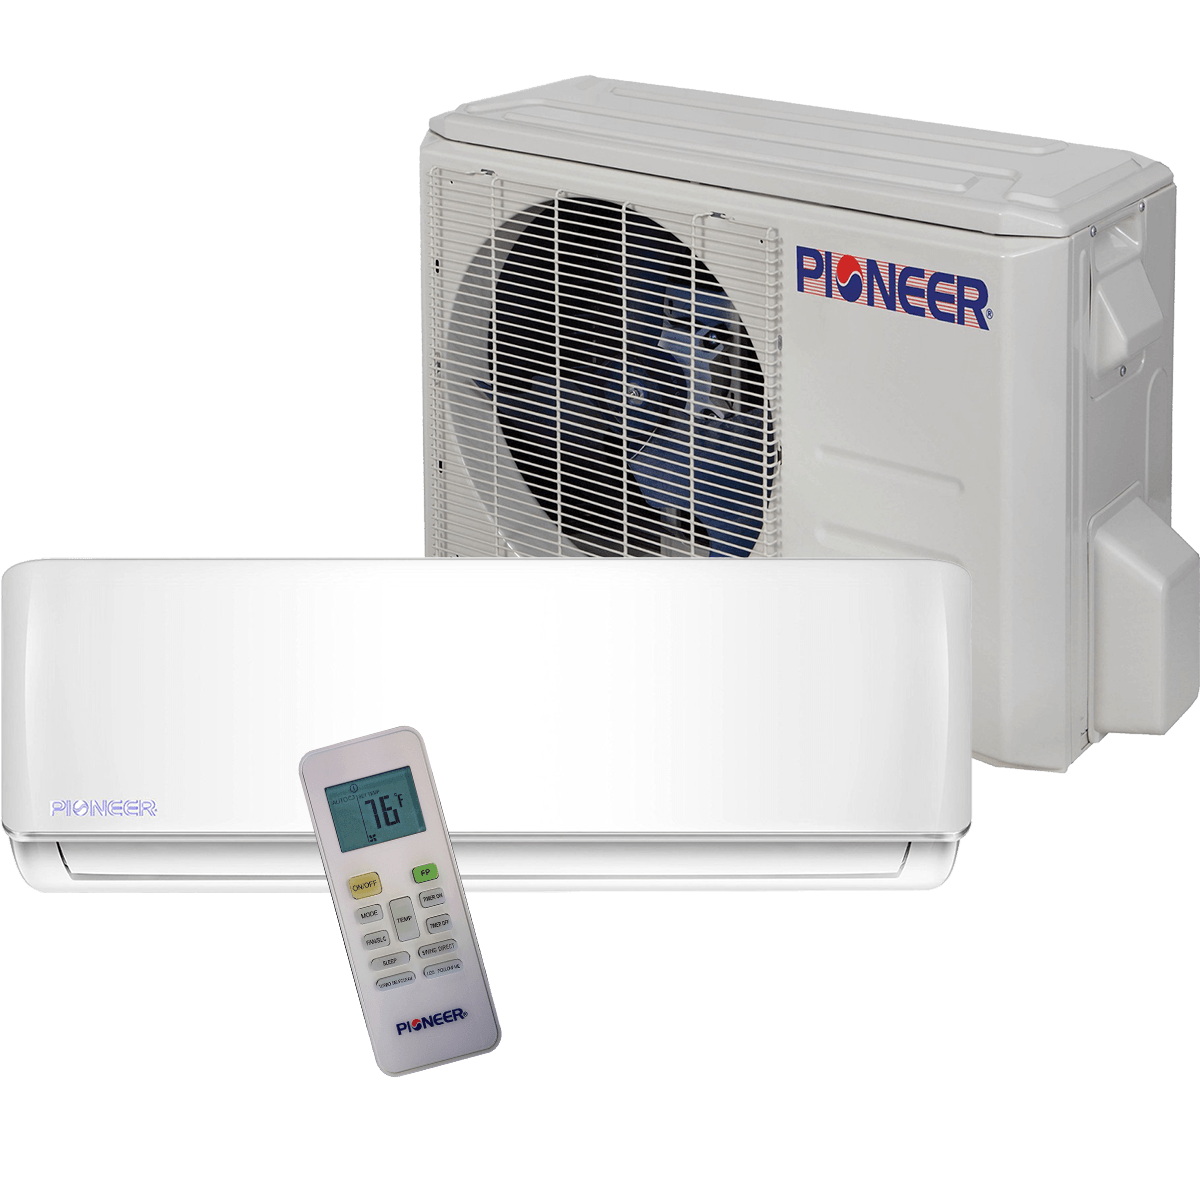 Pioneer 12 000 Btu 115v Ultra High Efficiency Mini Split Heat Pump Heat Pump Ductless Mini Split Windowless Air Conditioner